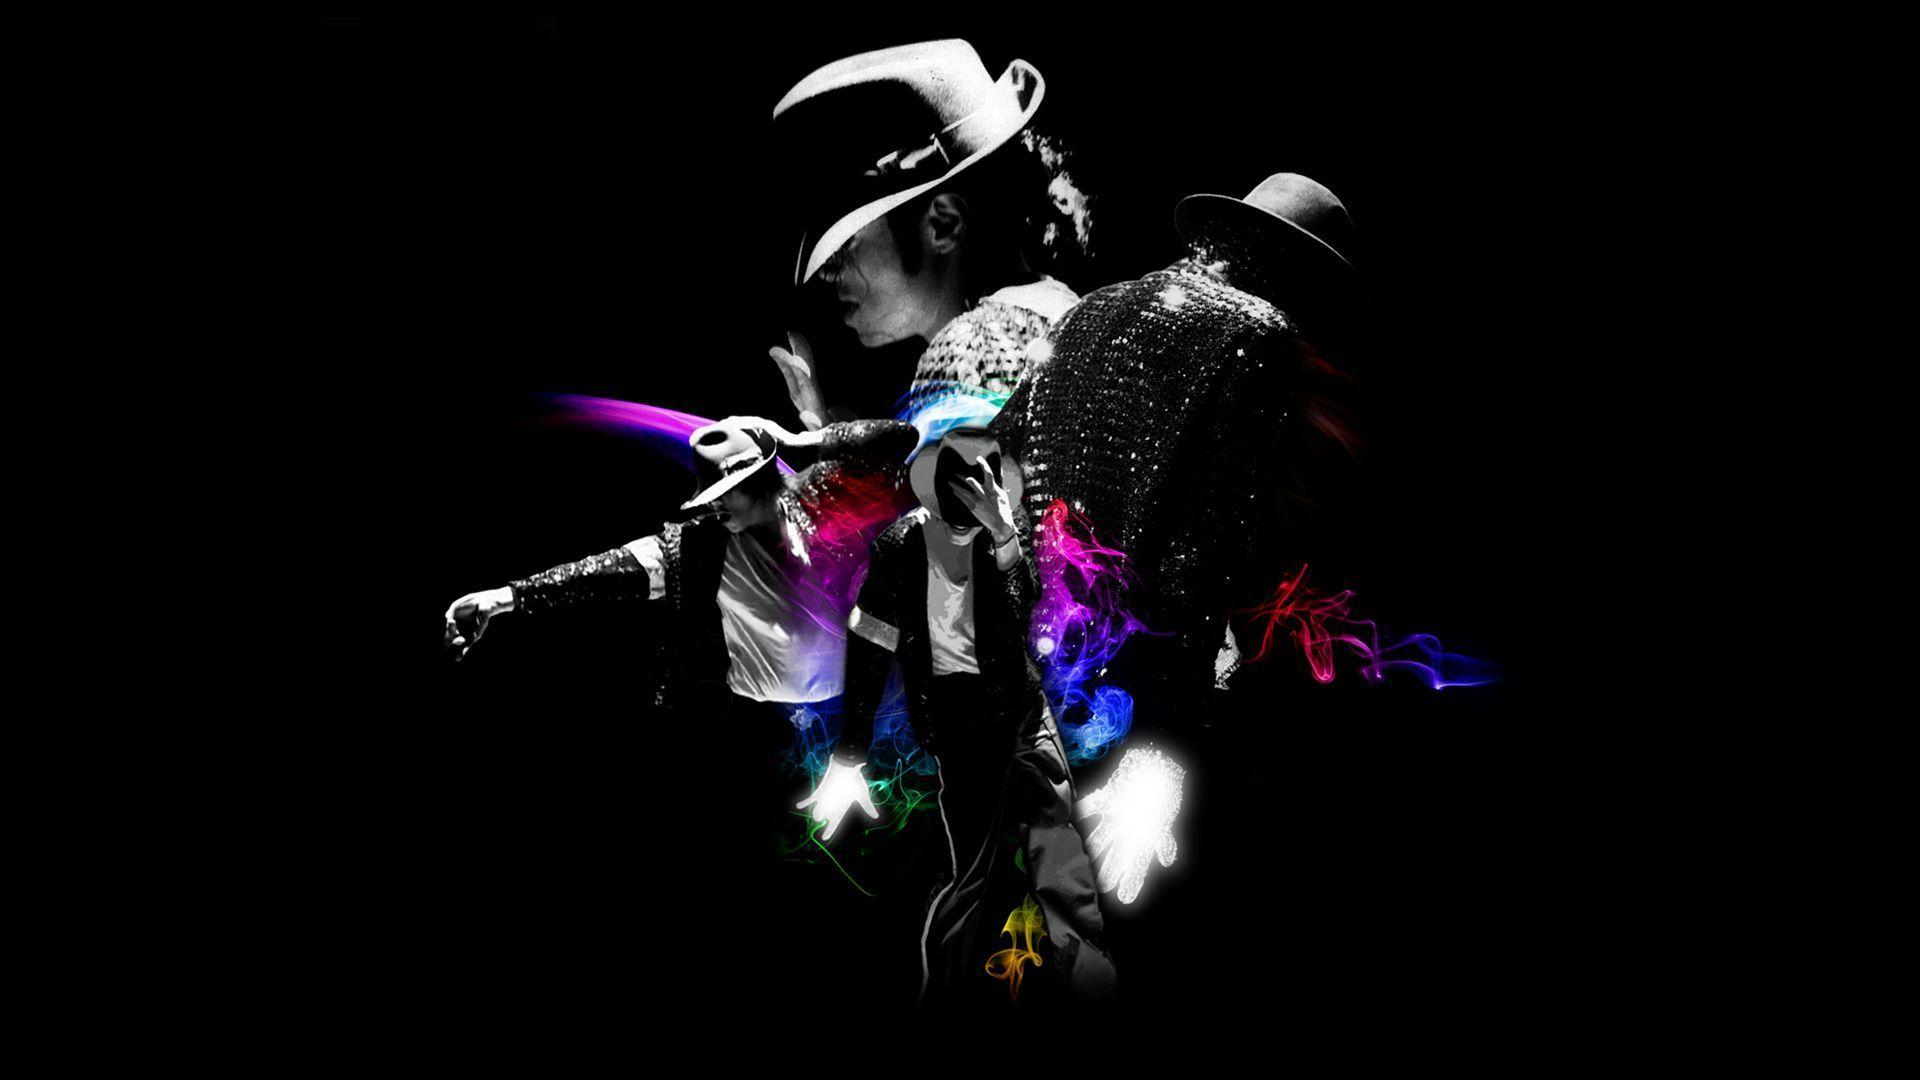 Michael Jackson Is King Of Pop Wallpaper Pics #2850 Wallpaper ...